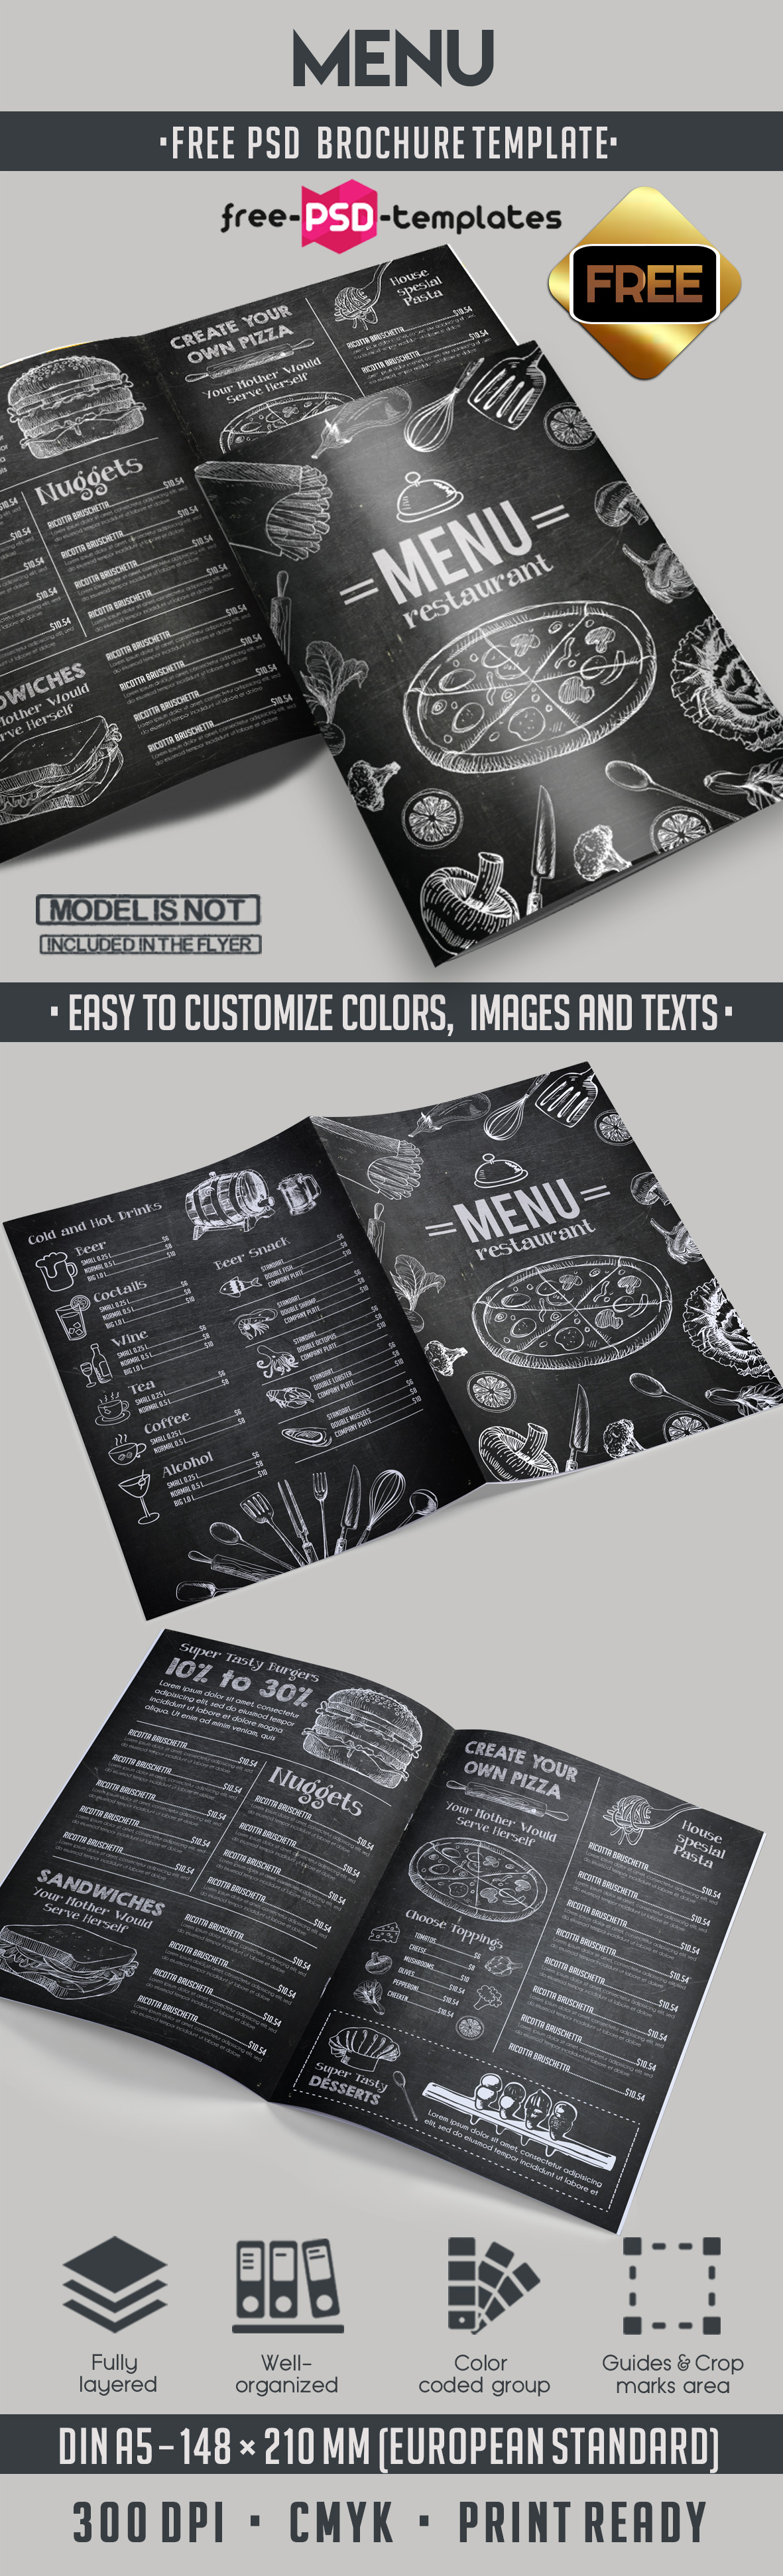 bigpreview_free-menu-blackboard-bi-fold-brochure